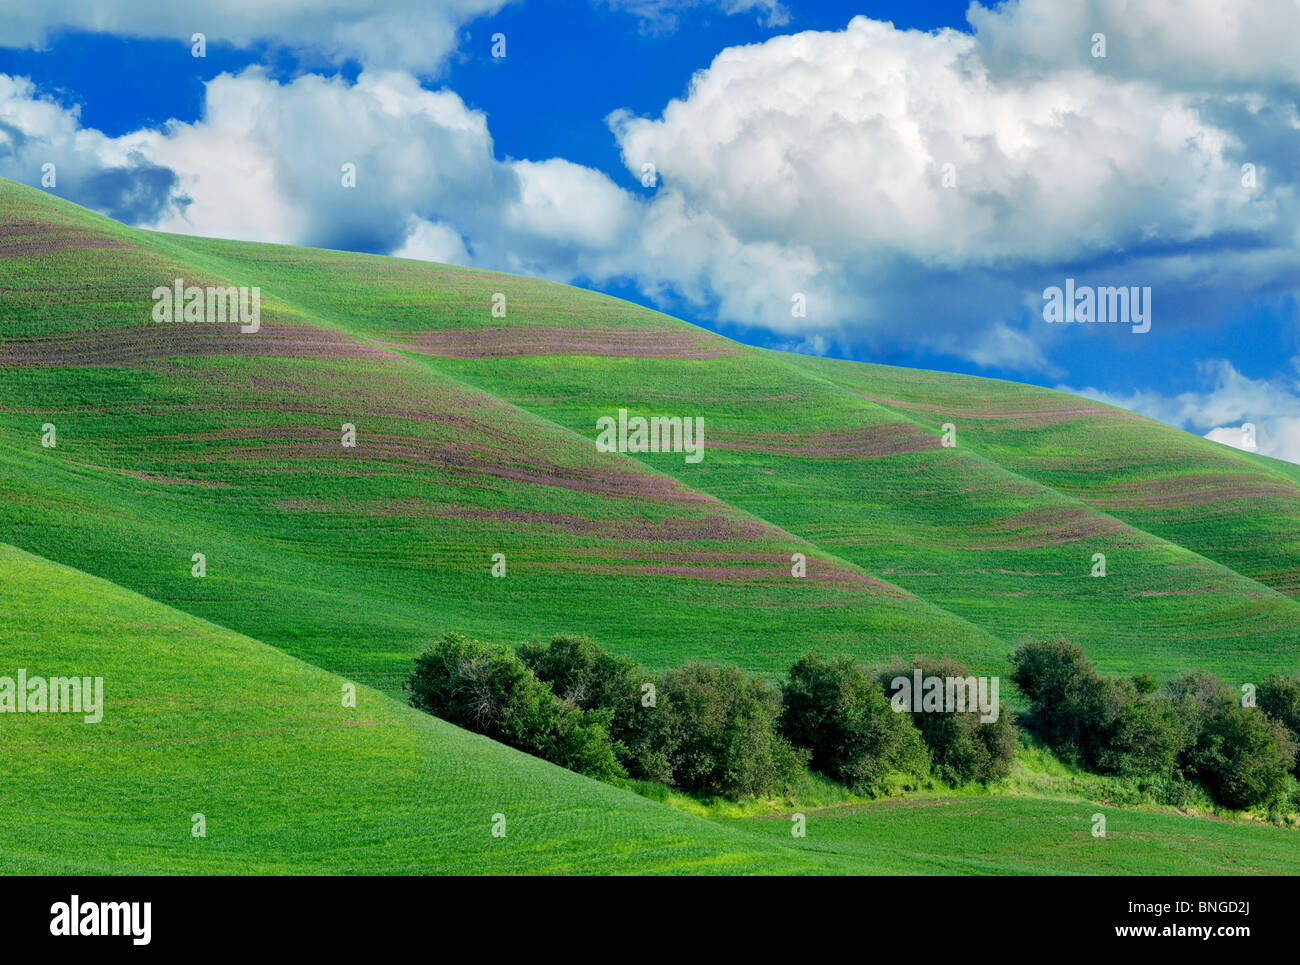 New spring wheat growth. The Palouse, near Colfax, Washington. - Stock Image